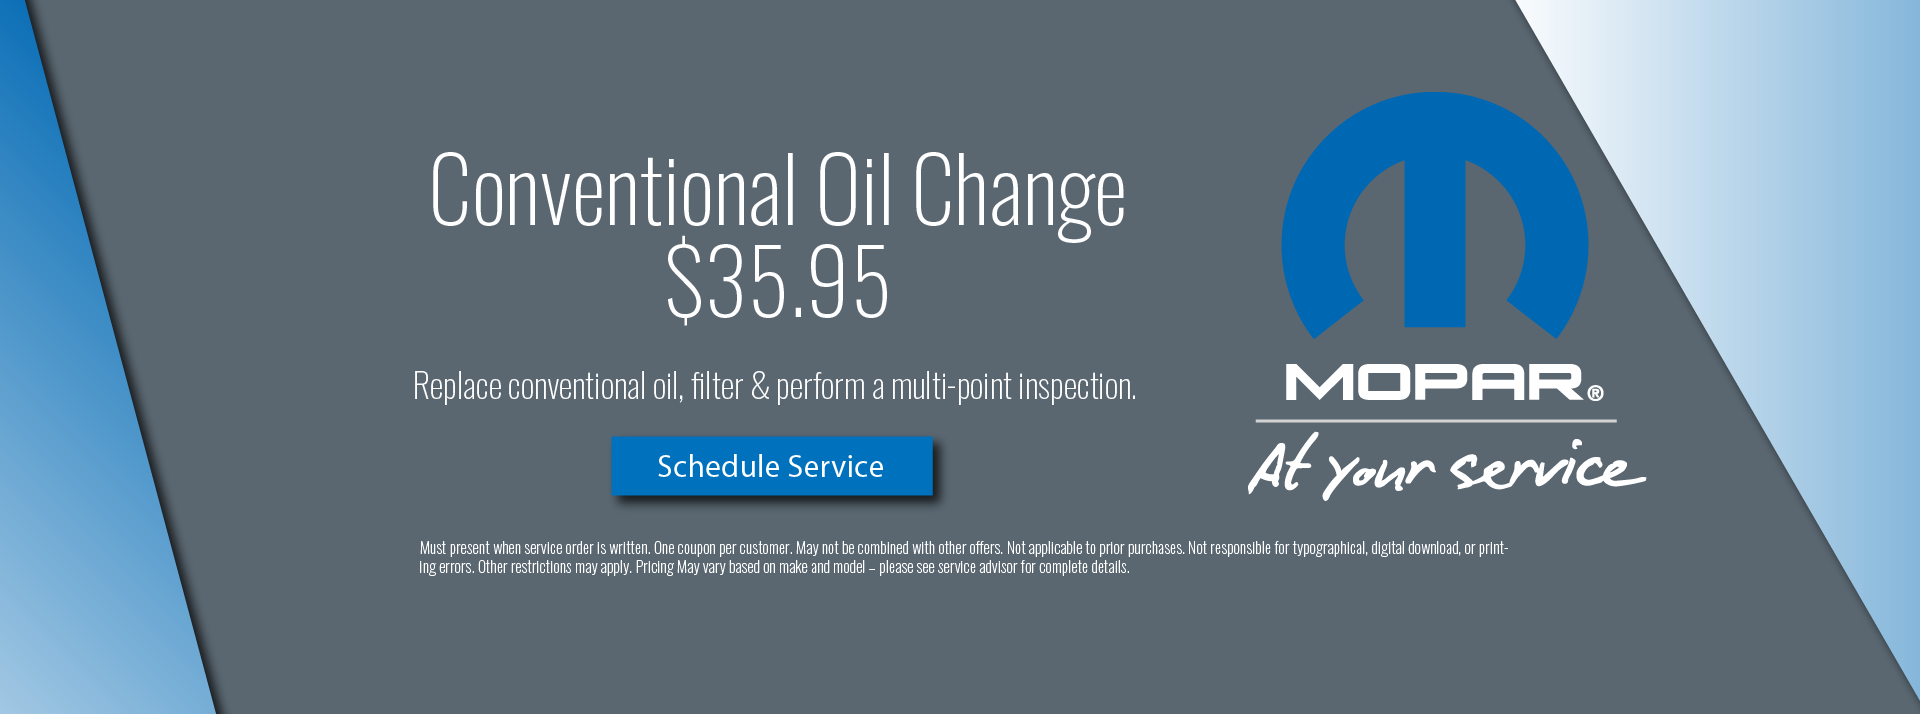 conventional oil change